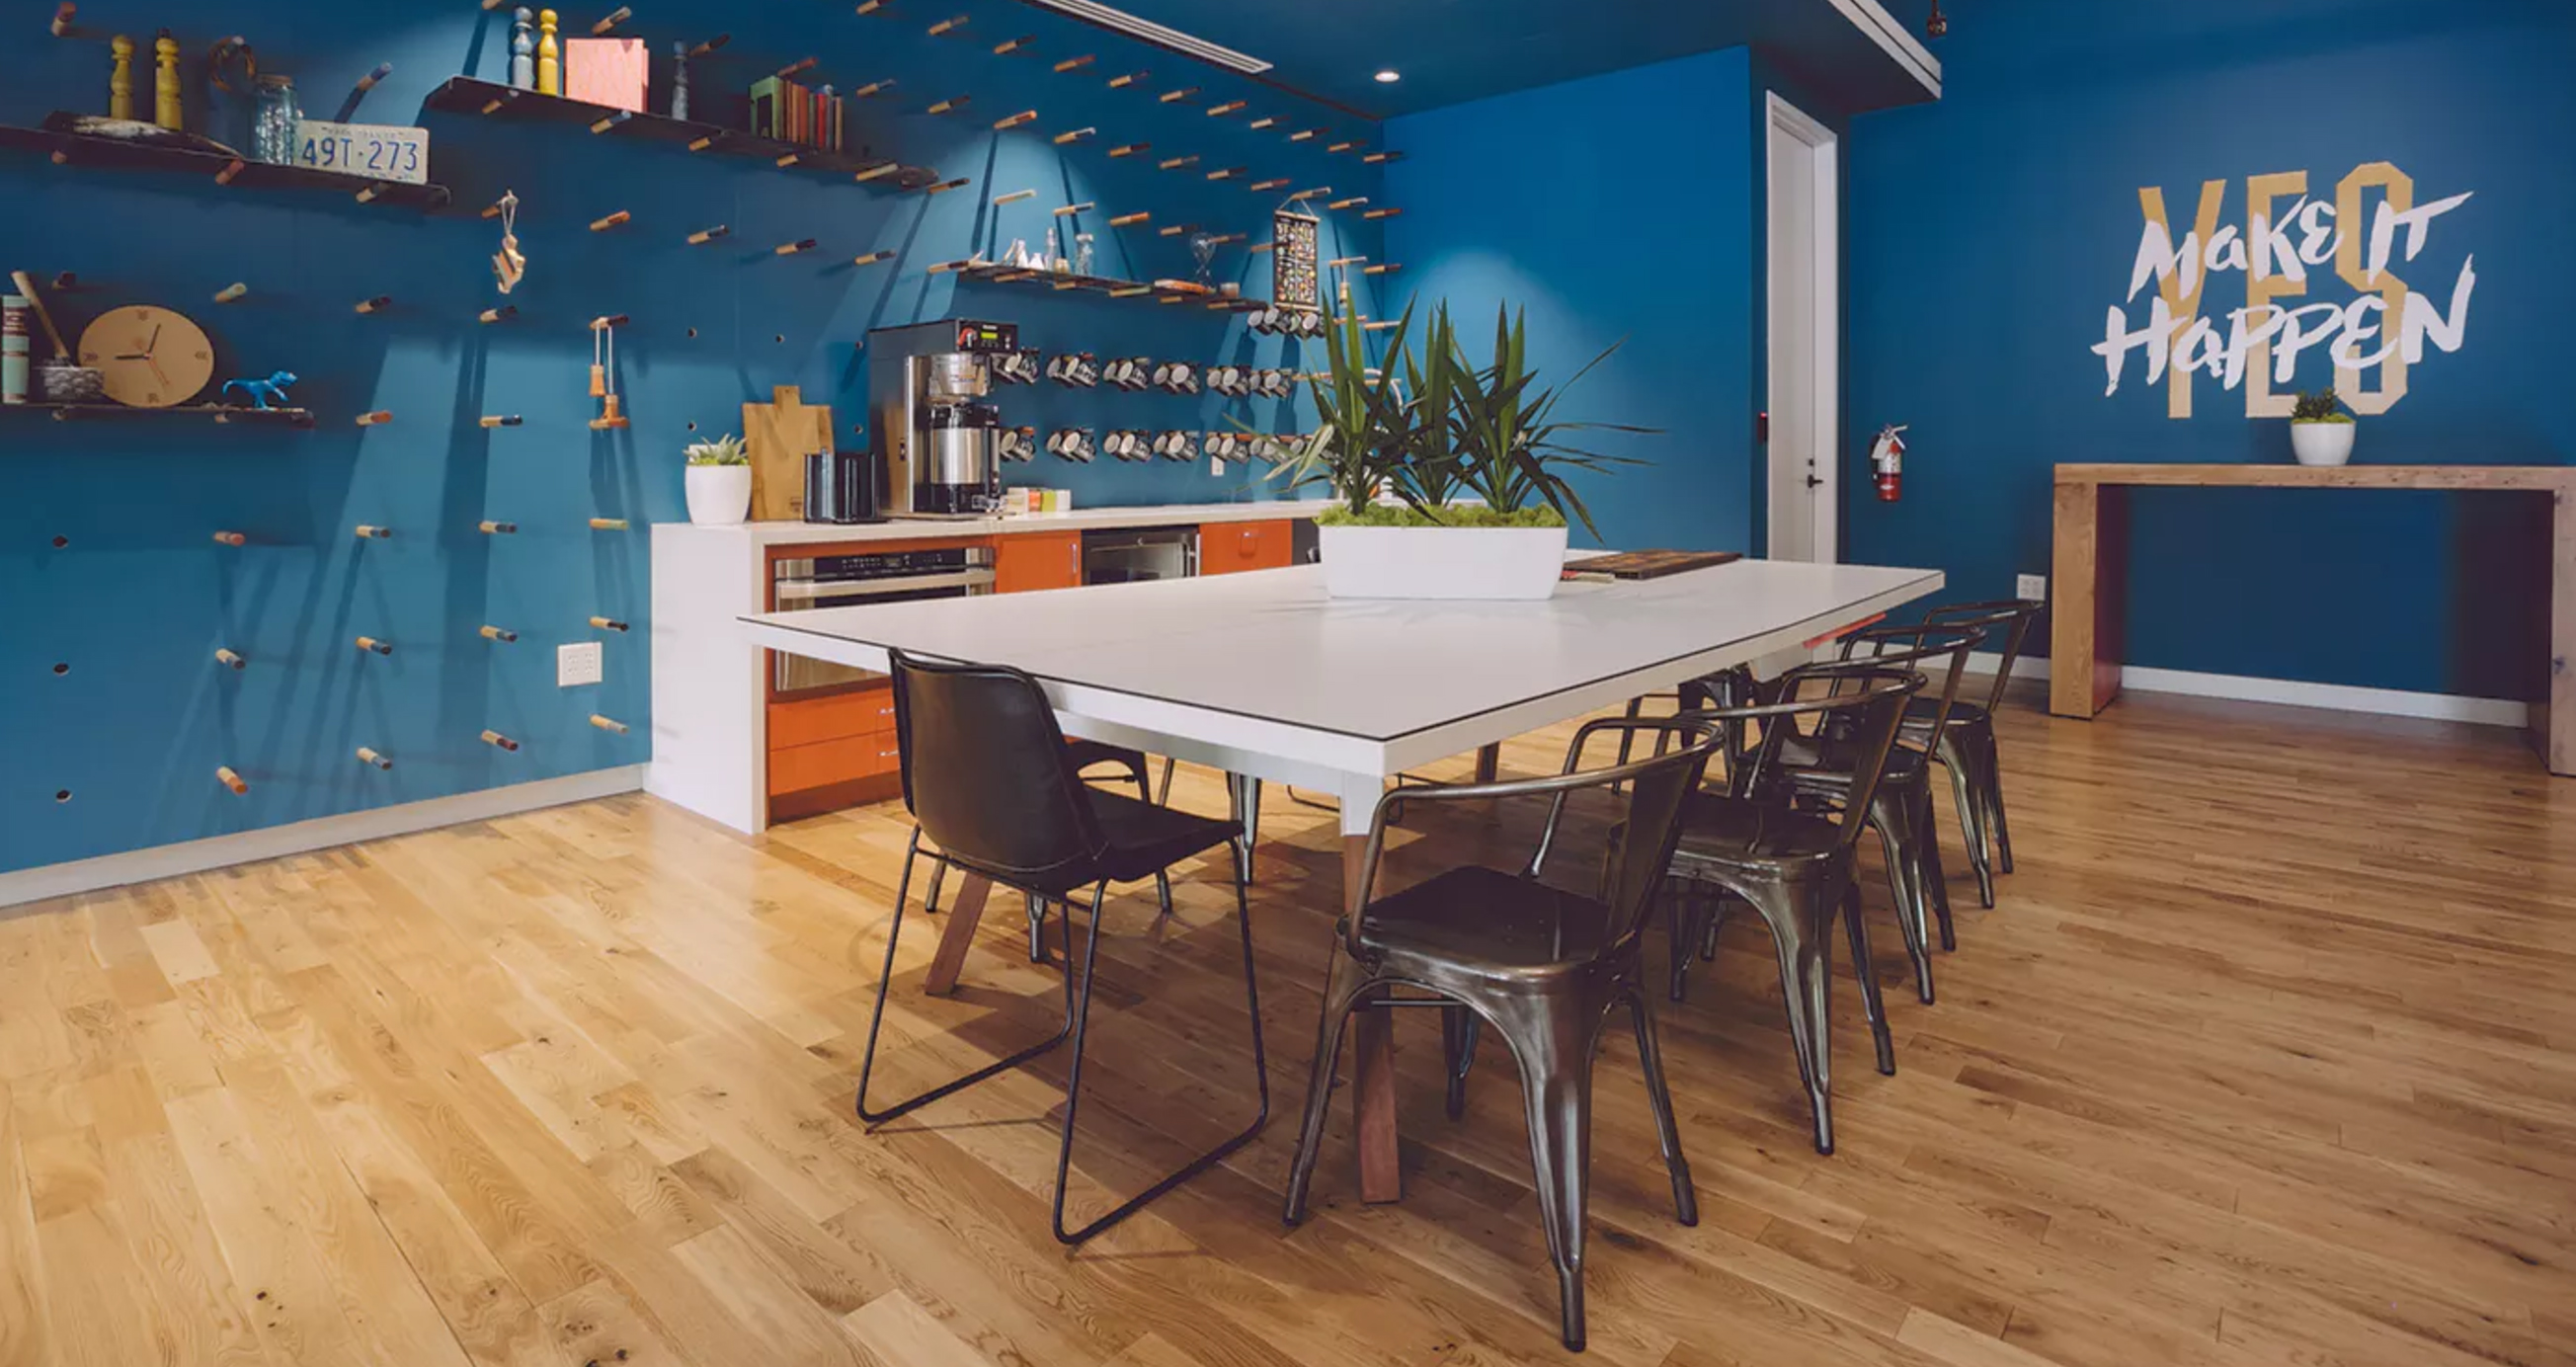 GQR Global Markets' Austin office will operate out of WeWork's 600 Congress Ave. location.